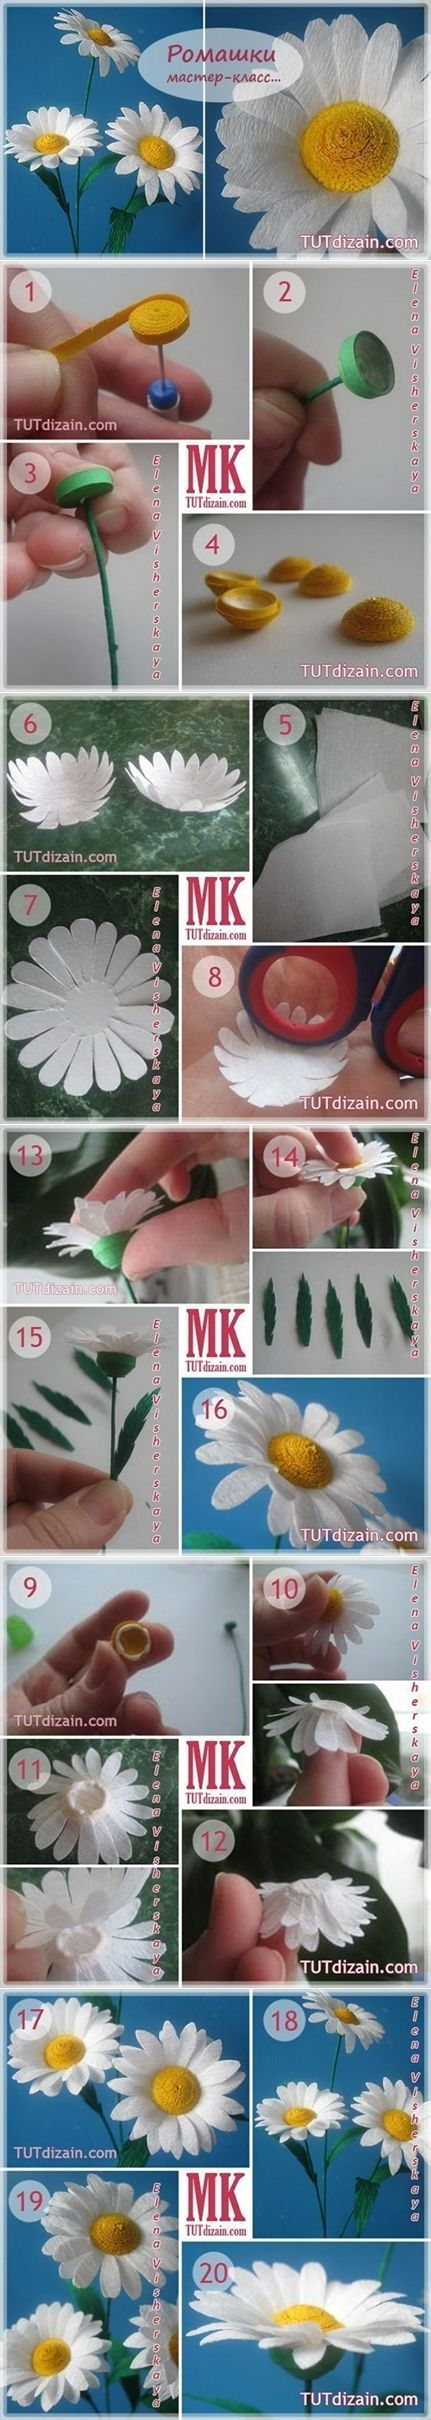 quilled daisy bouquet tutorial http://www.fabartdiy.com/diy-quilled-wild-daisy-bouquet/